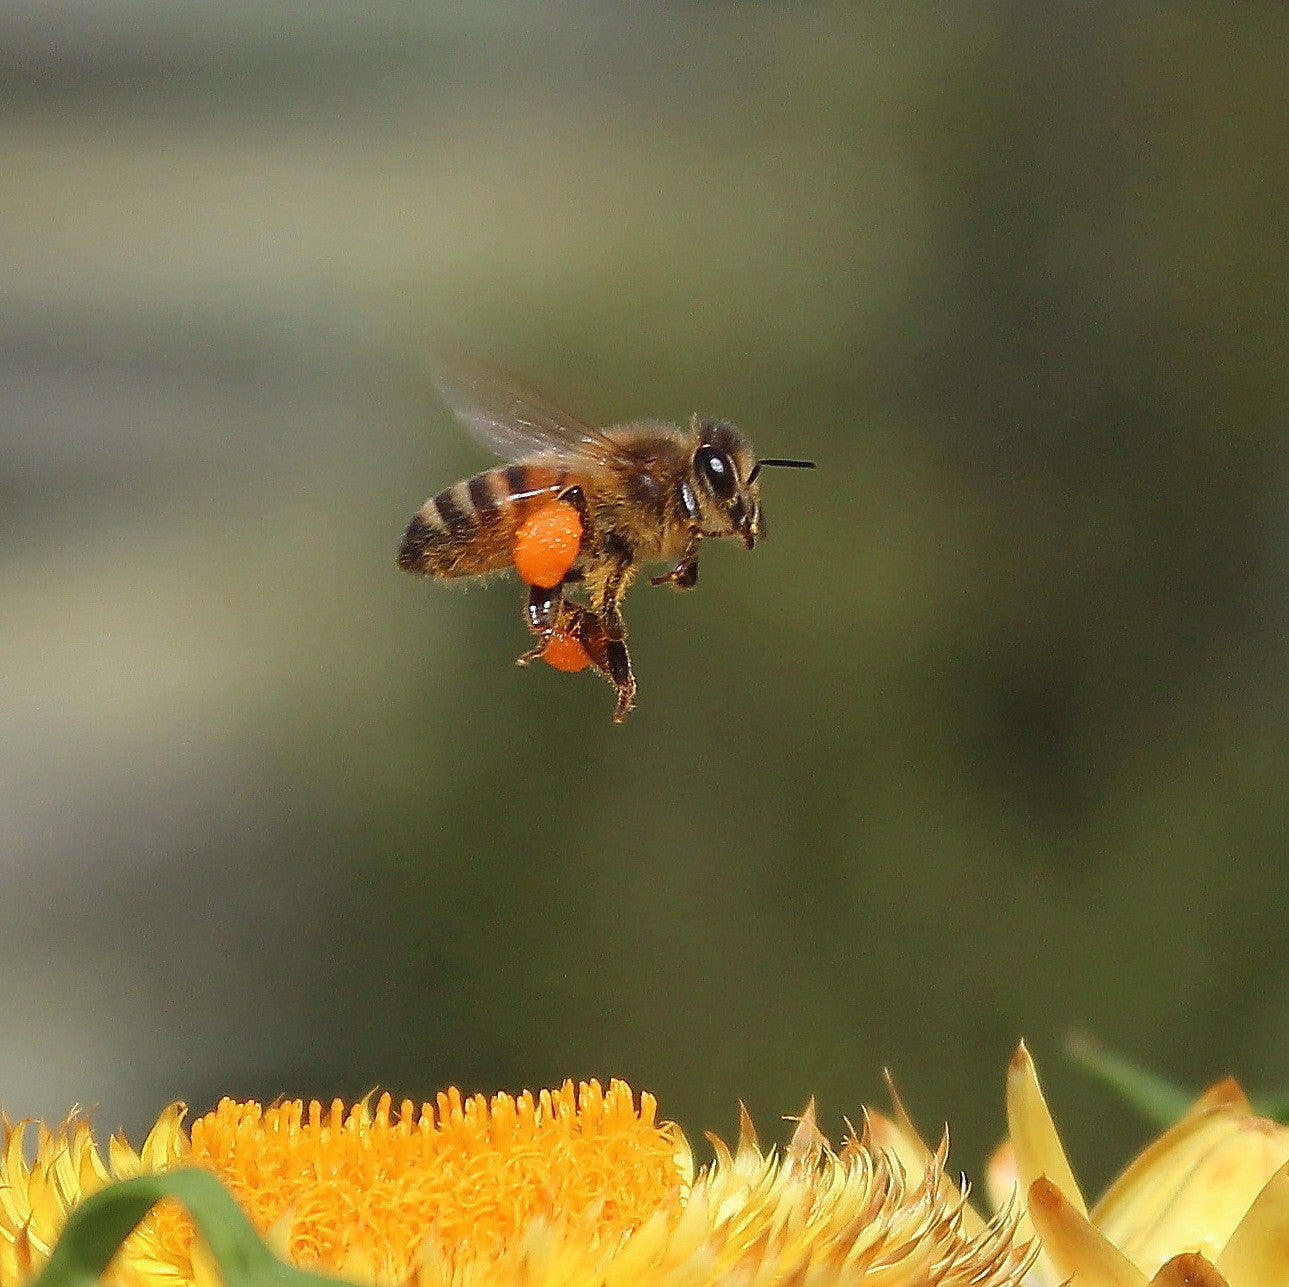 Honey bee flying